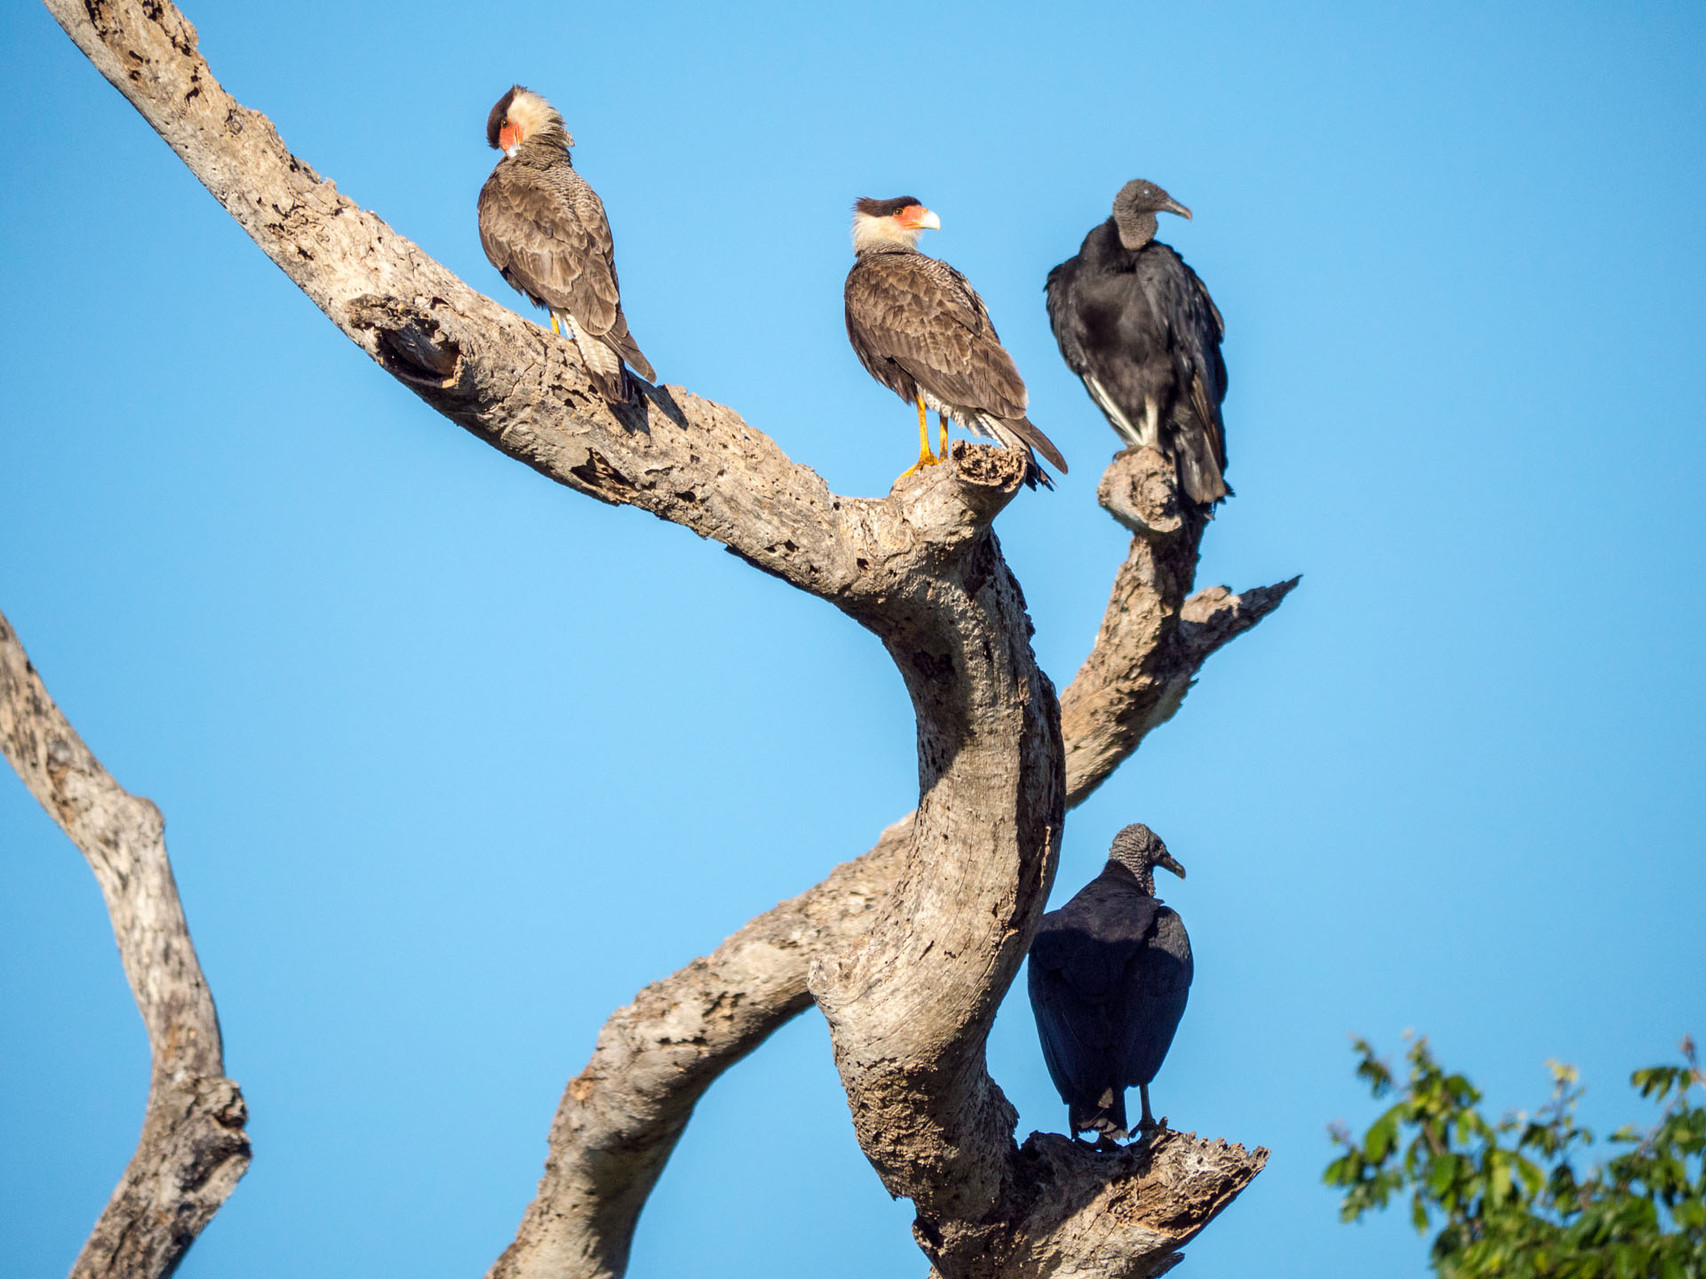 Southern Crested Caracaras and Black Vultures